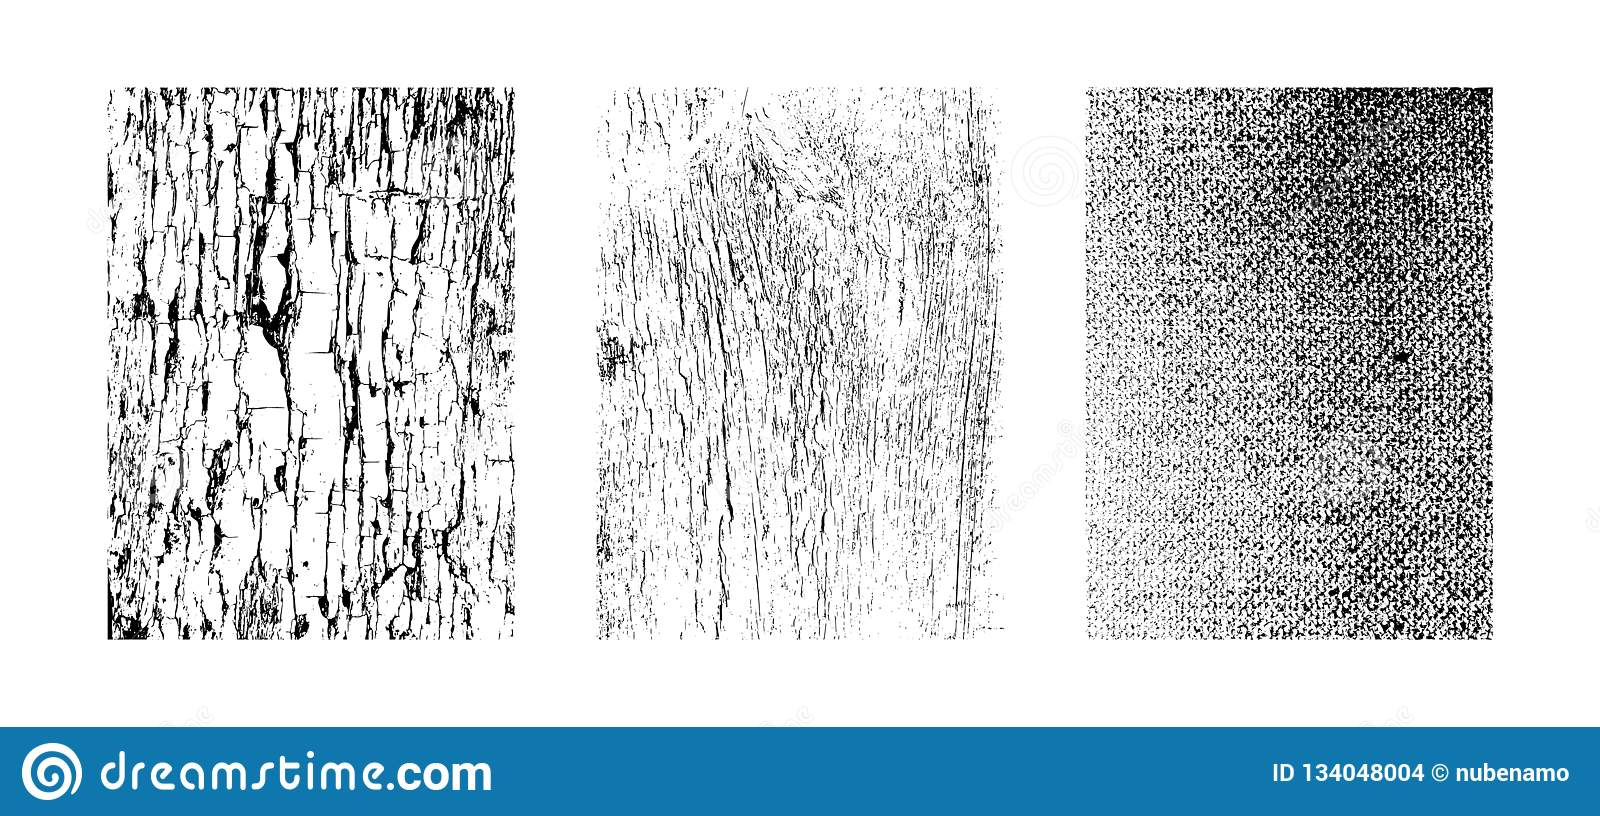 hight resolution of scratchy textures abstract grunge backdrops vector clipart illustrations isolated on white background